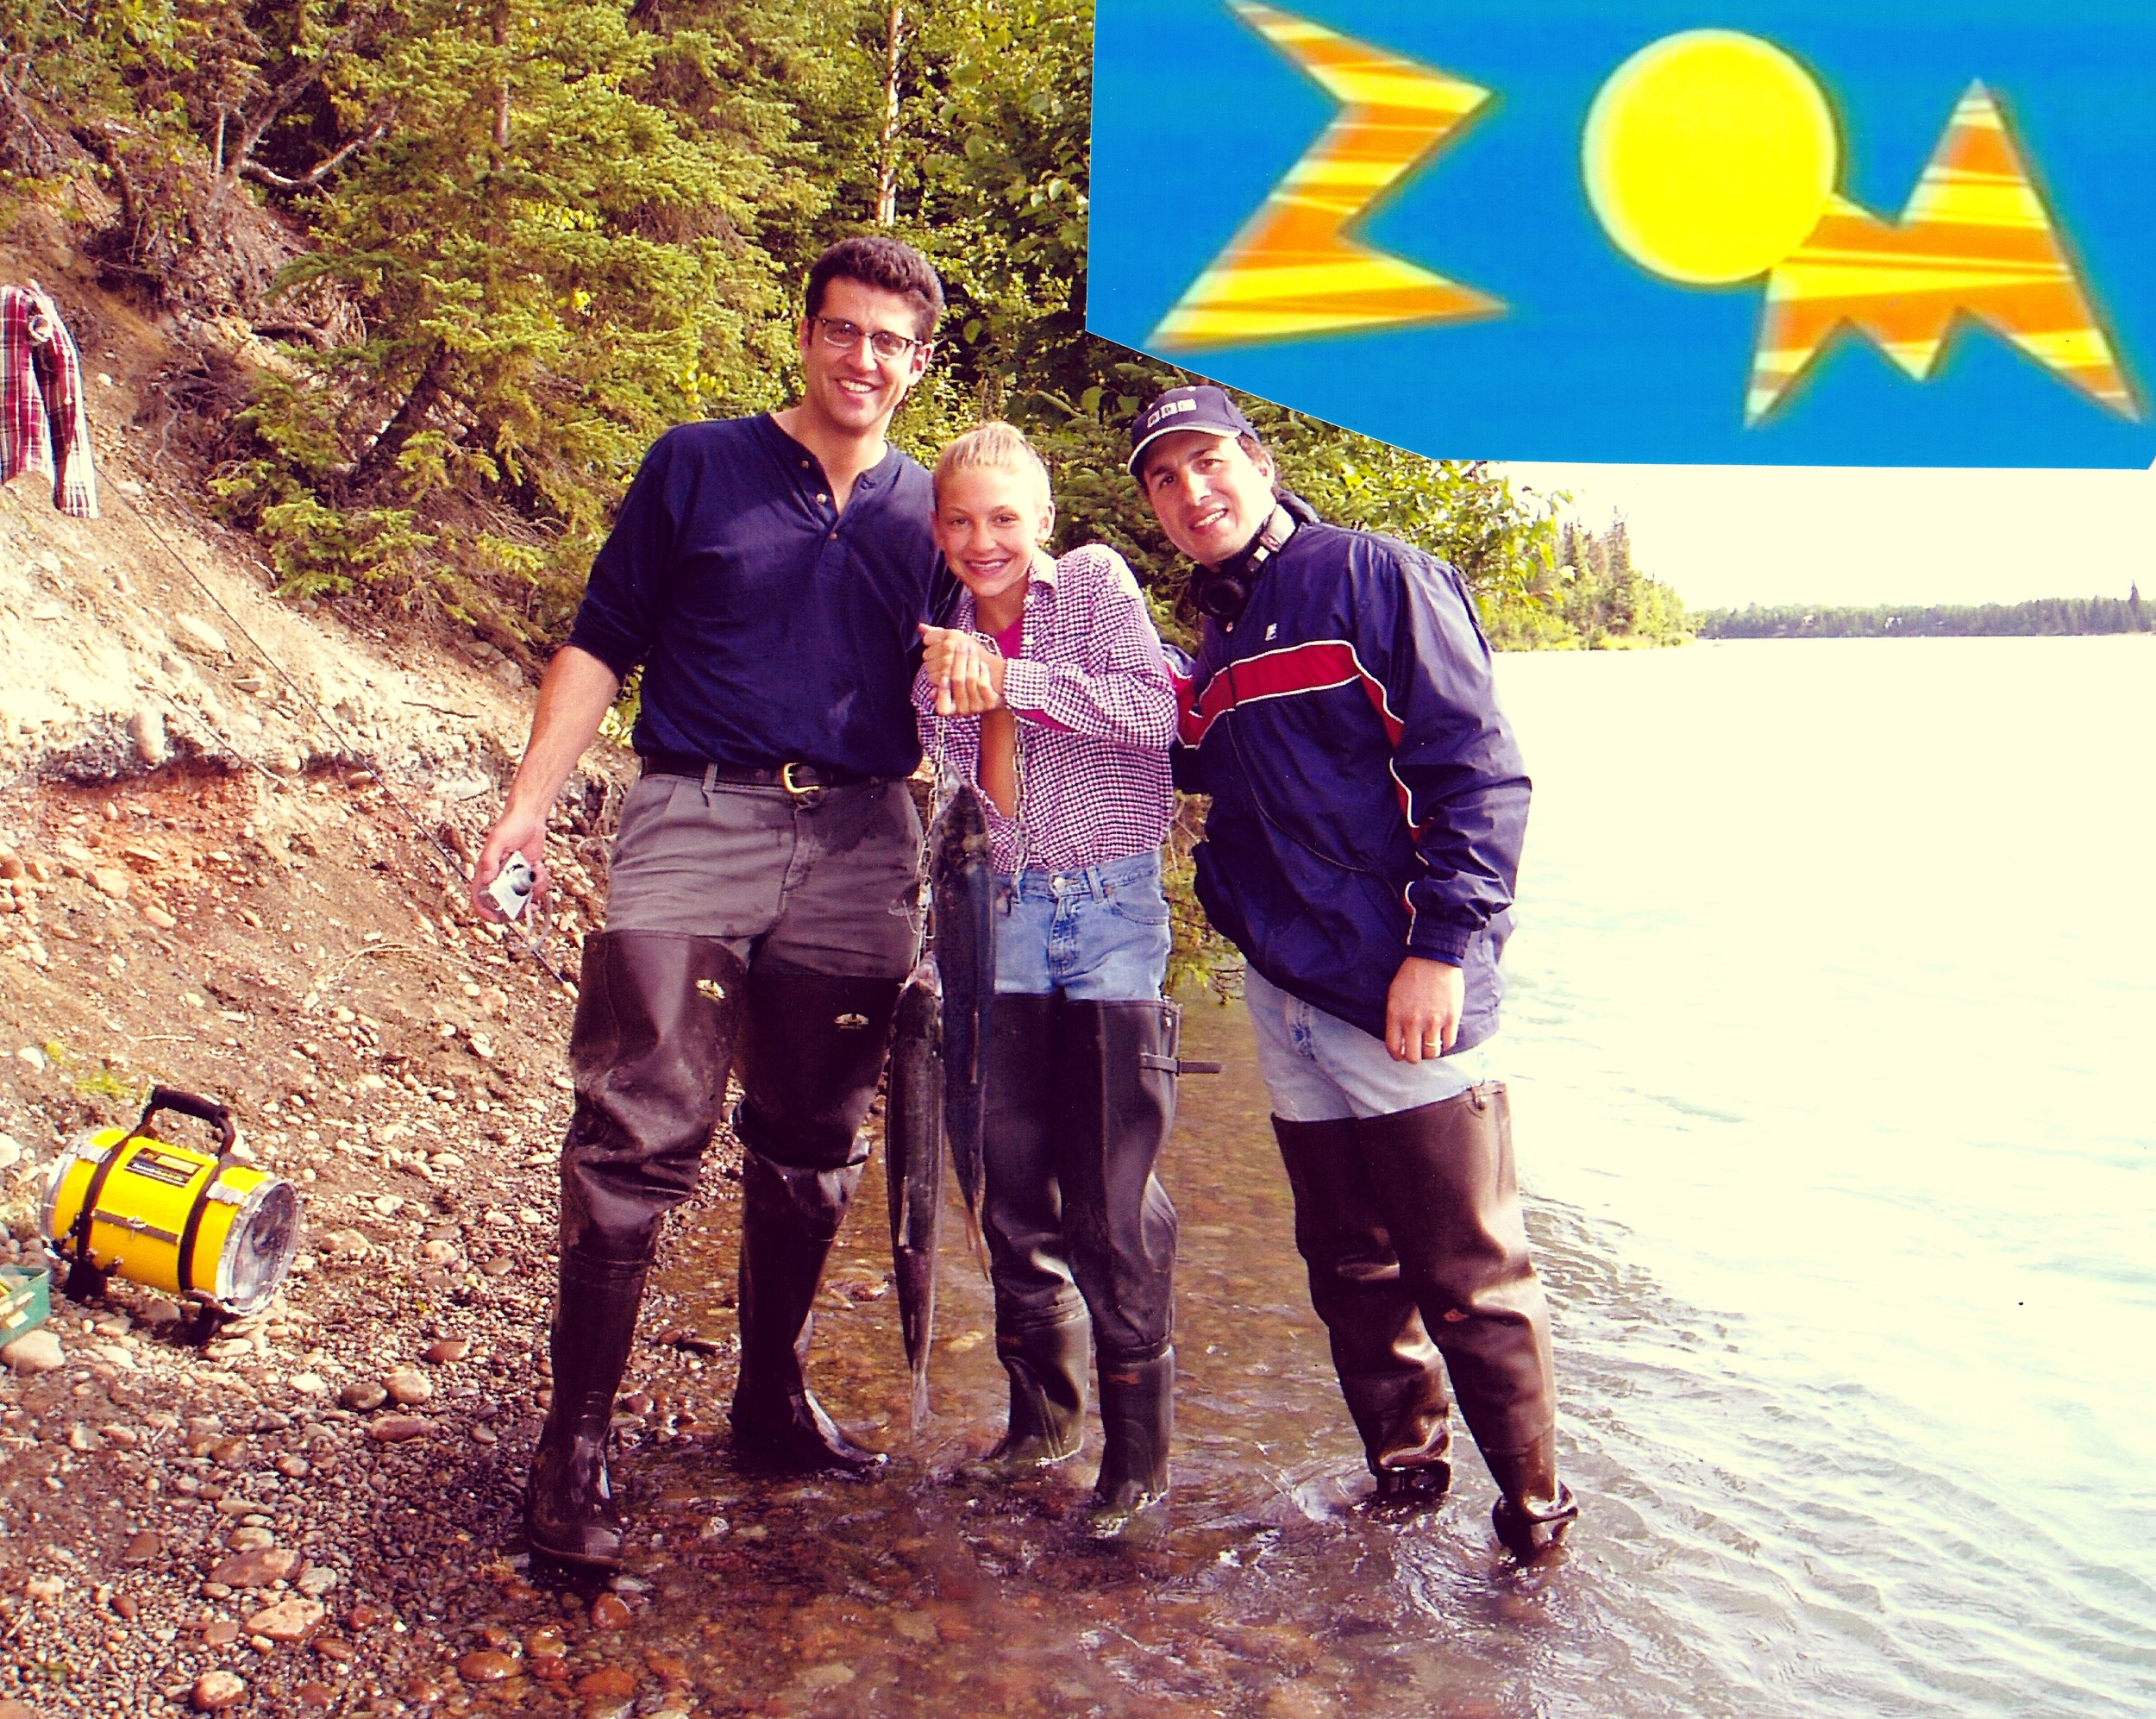 Steve, my granddaughter Jordan, and Alan fishing during the project.